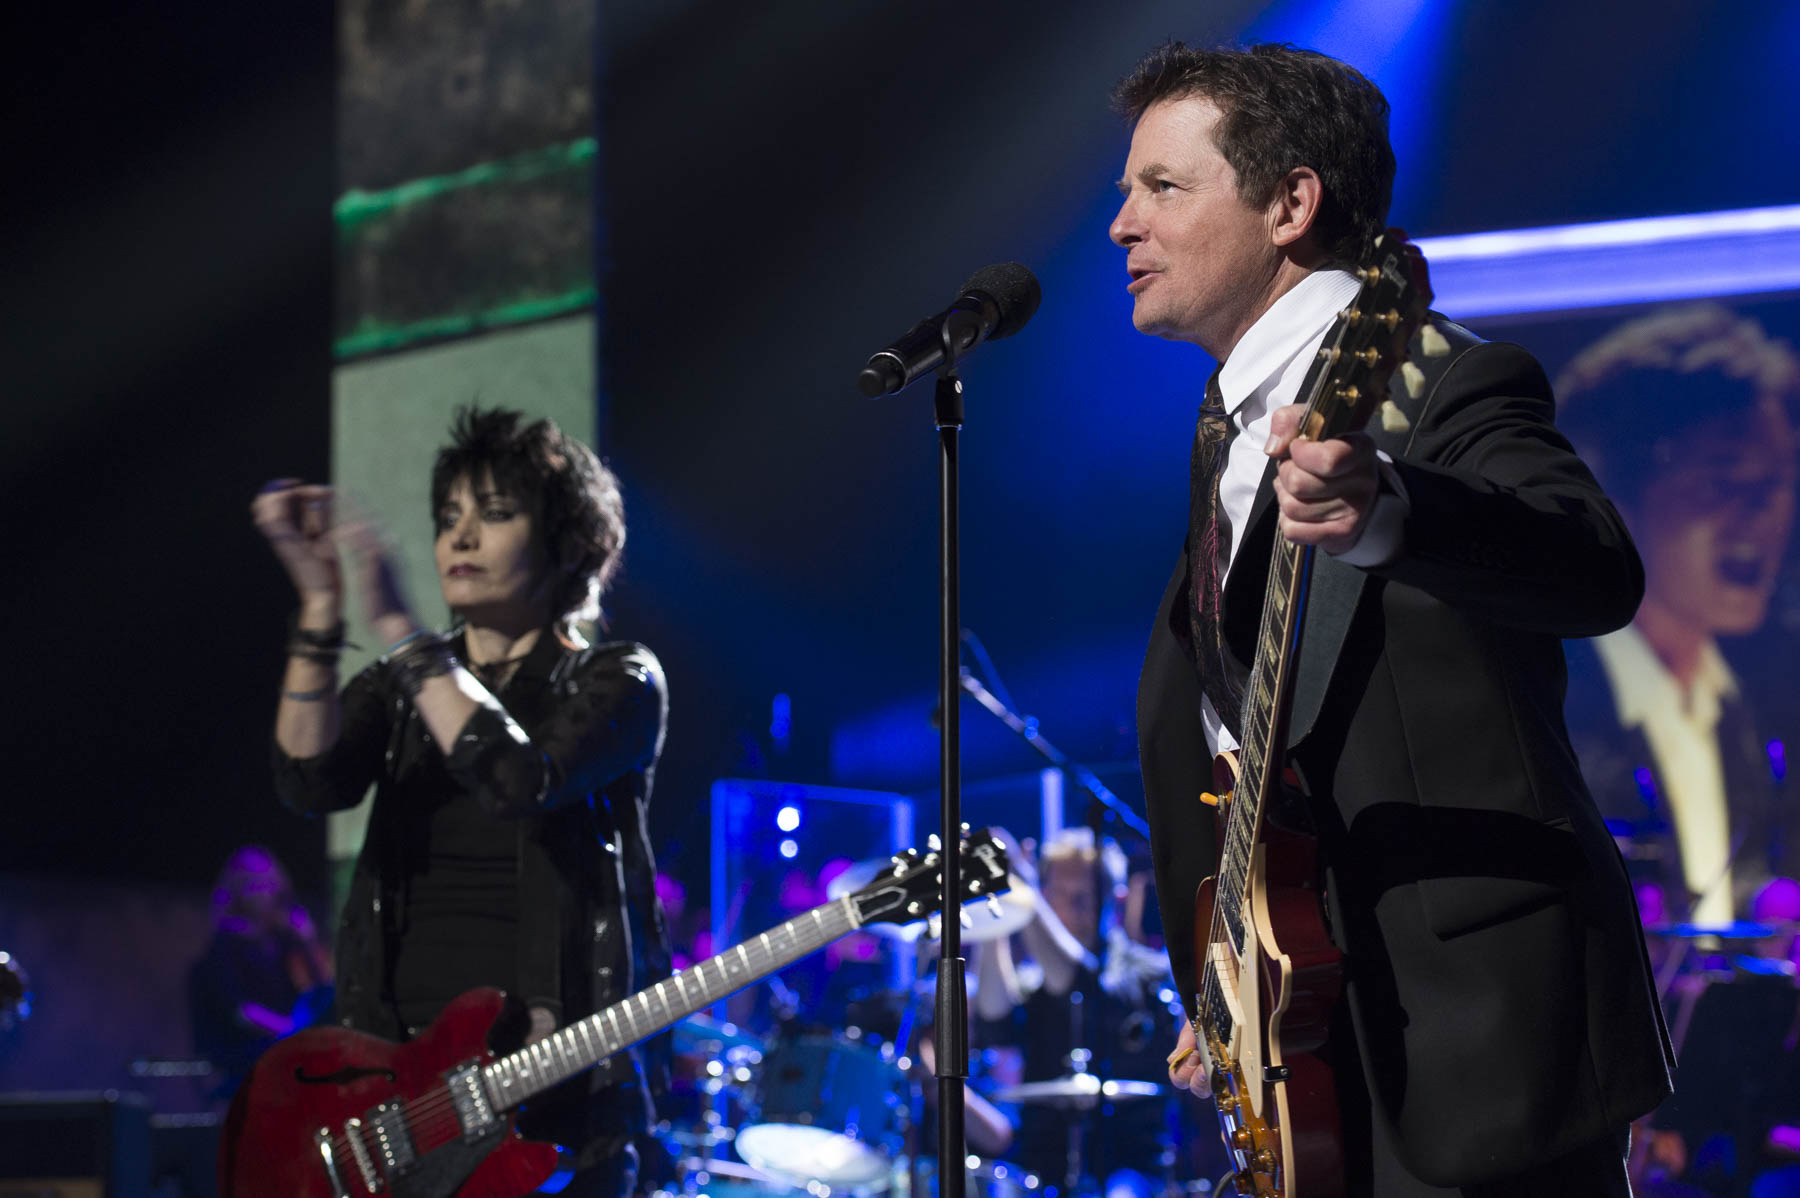 2017 Lifetime Artistic Achievement Award laureate Michael J. Fox stuned everyone by taking the stage by Joan Jett's side.